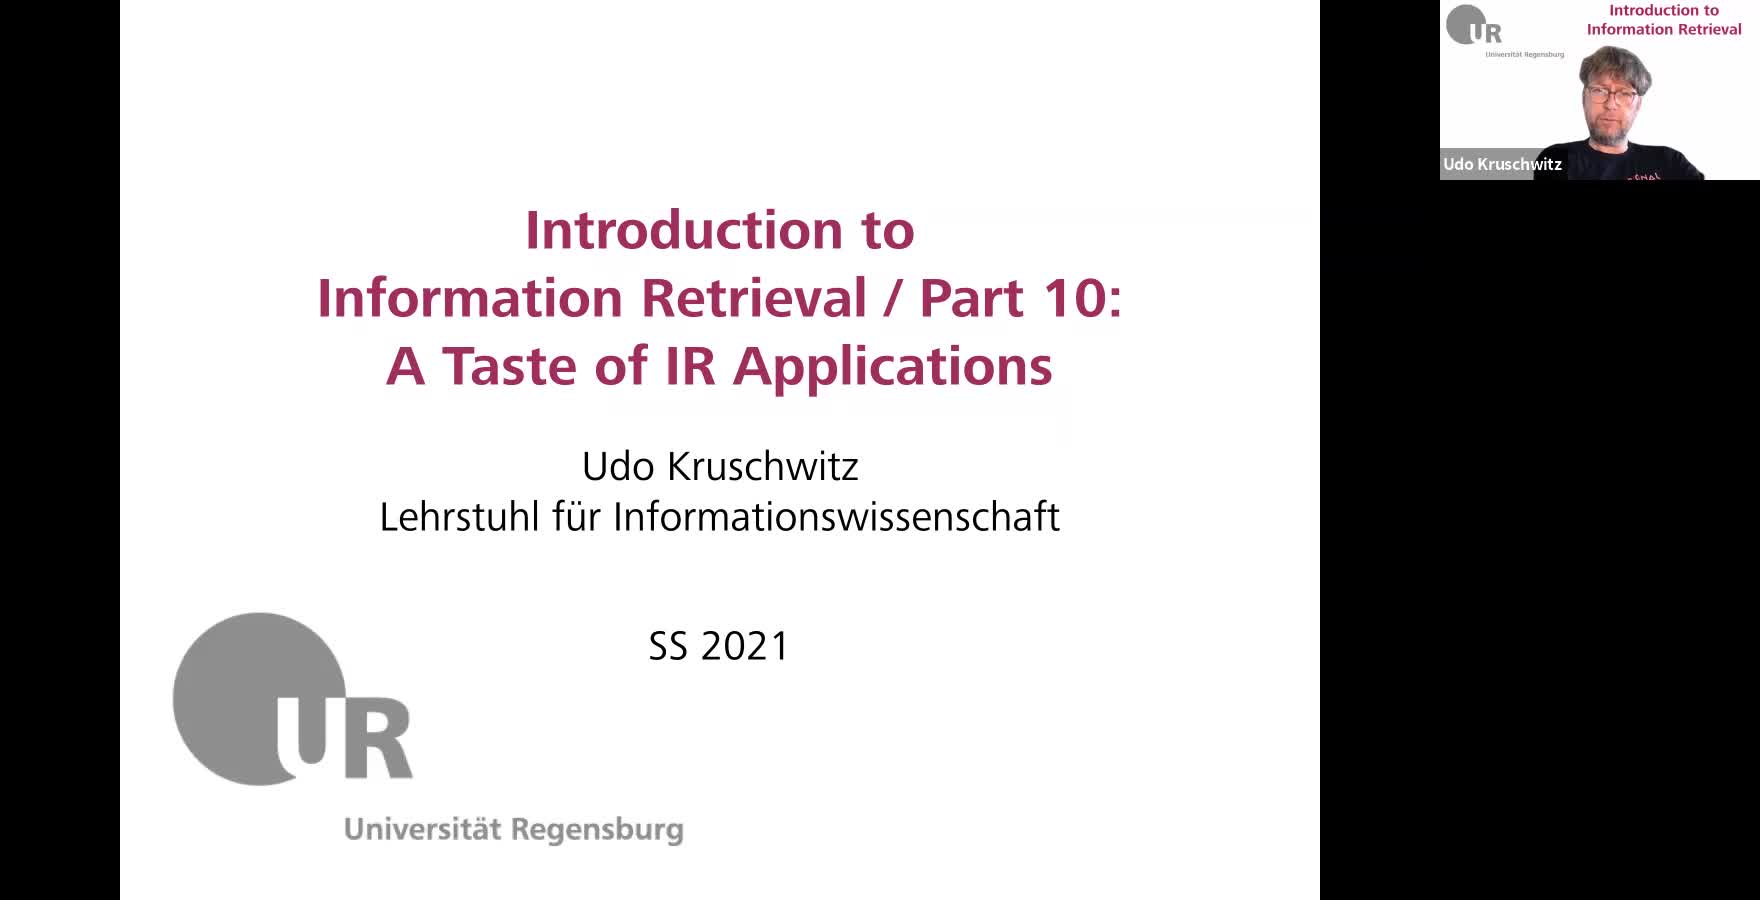 Introduction to Information Retrieval - Lecture 10 (A taste of IR applications)